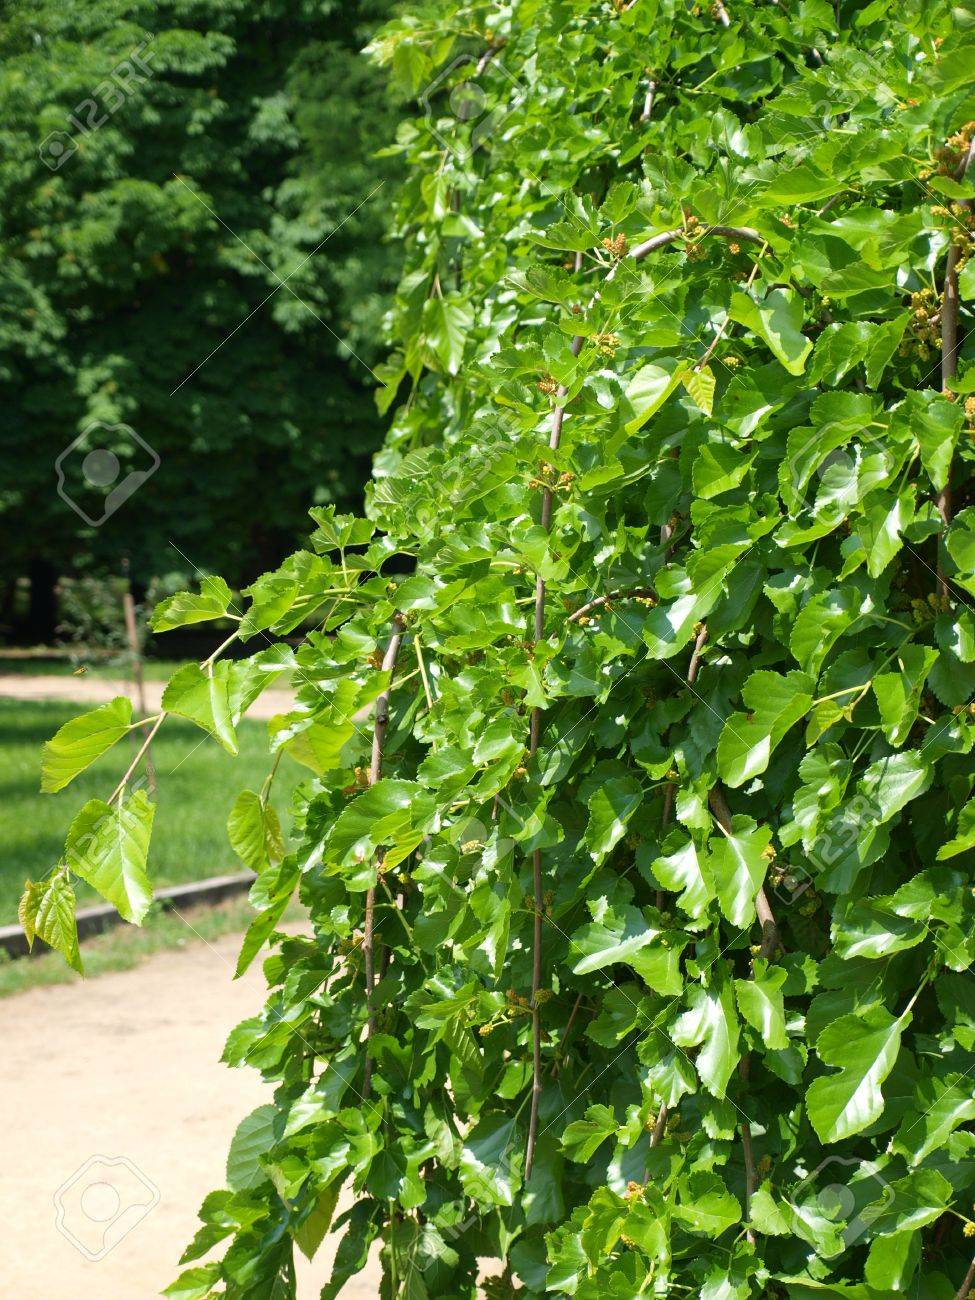 the leaves of mulberry tree in the park close to the background